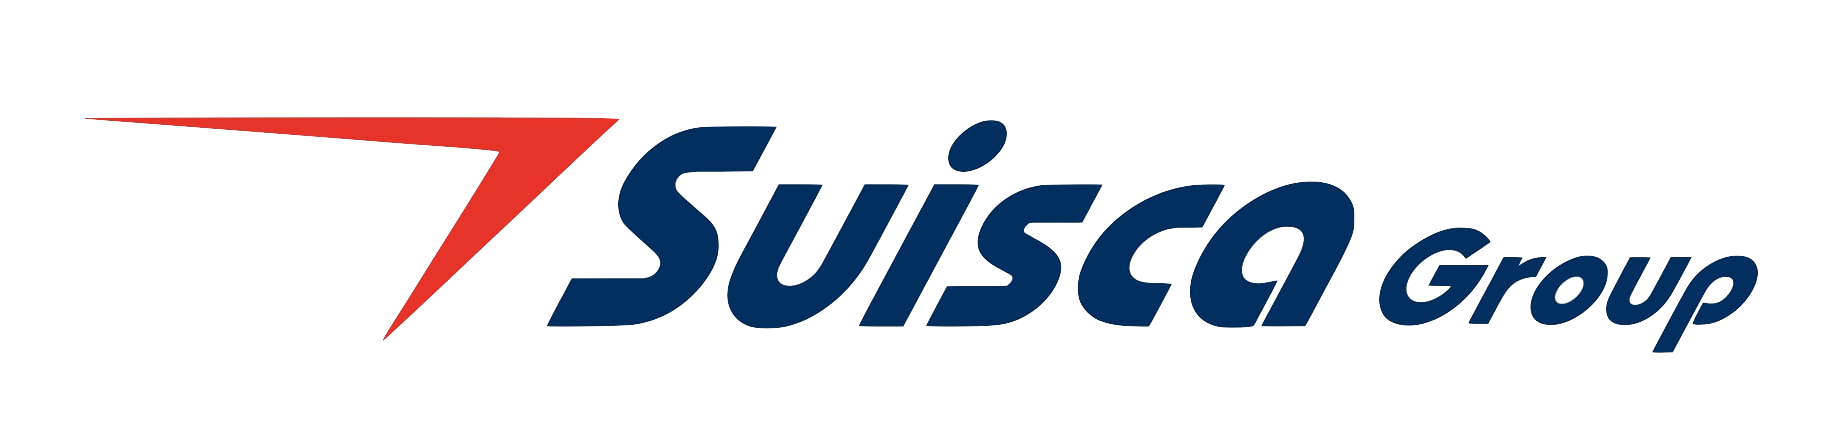 Suisca Group